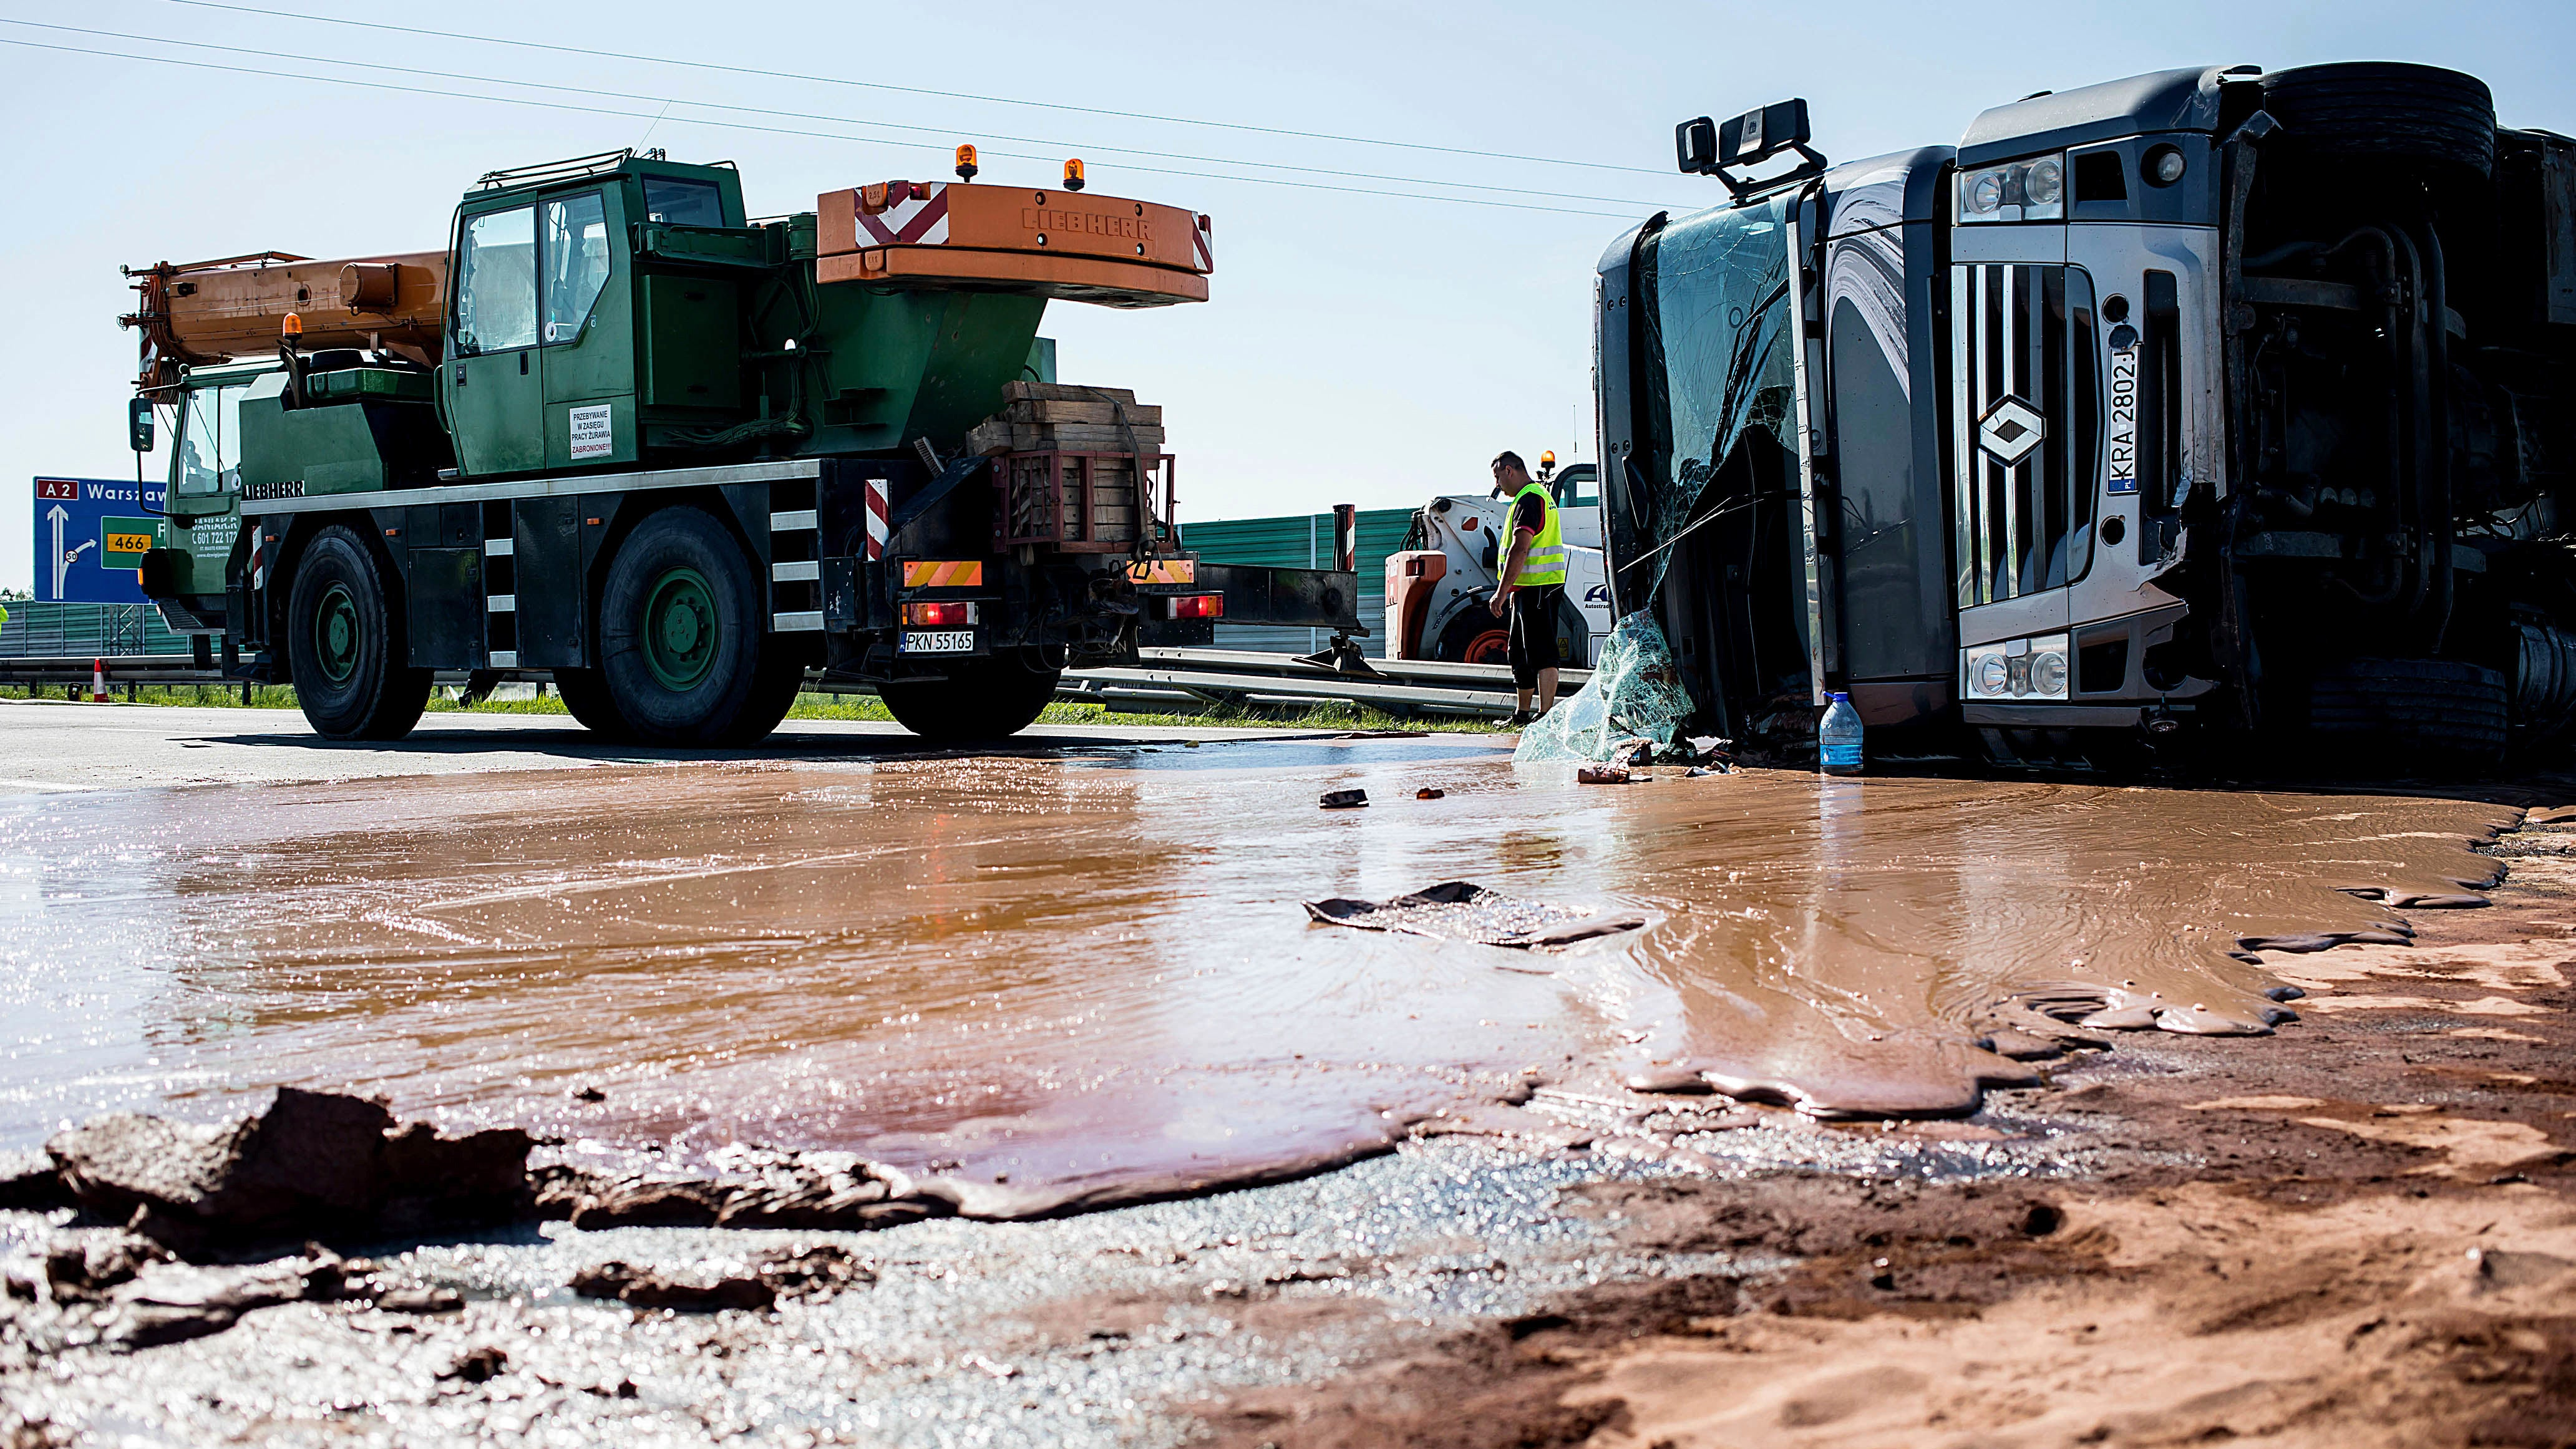 Oops! A Tippy Truck Spilled A Ton Of Sticky Chocolate All Over The Road